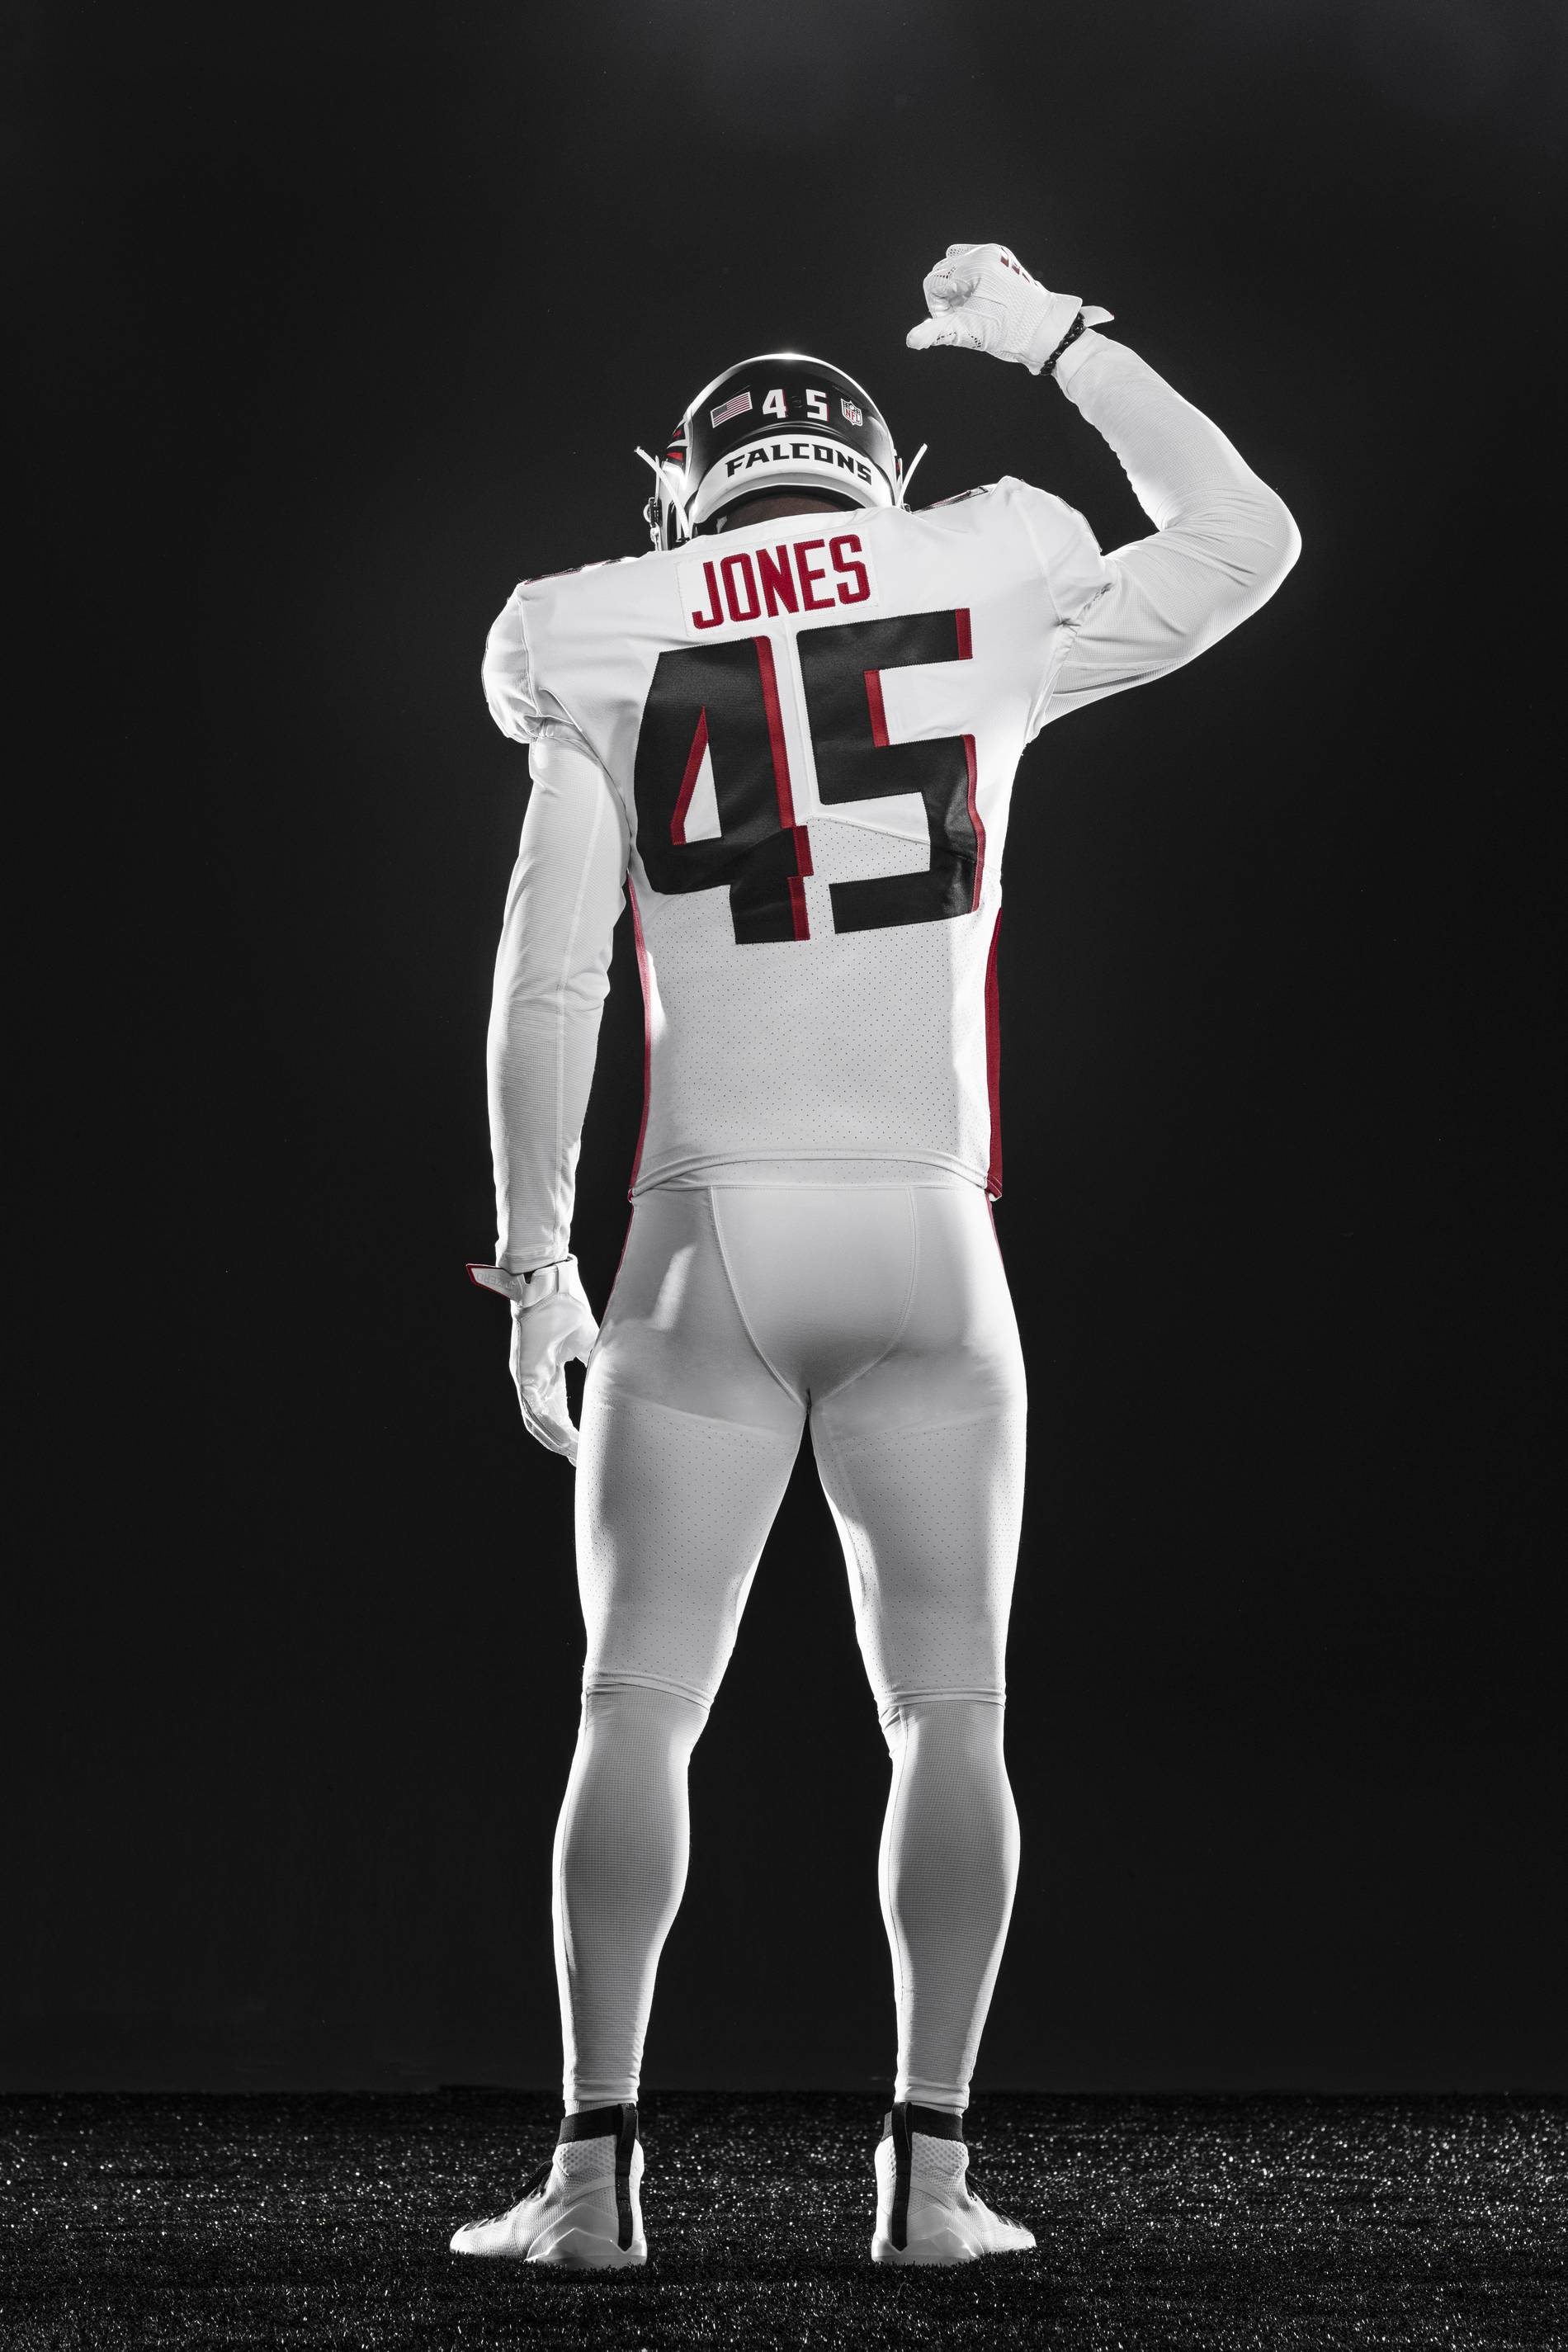 2020_AtlantaFalcons_DeionJones_Away_Hero_7286.JPG